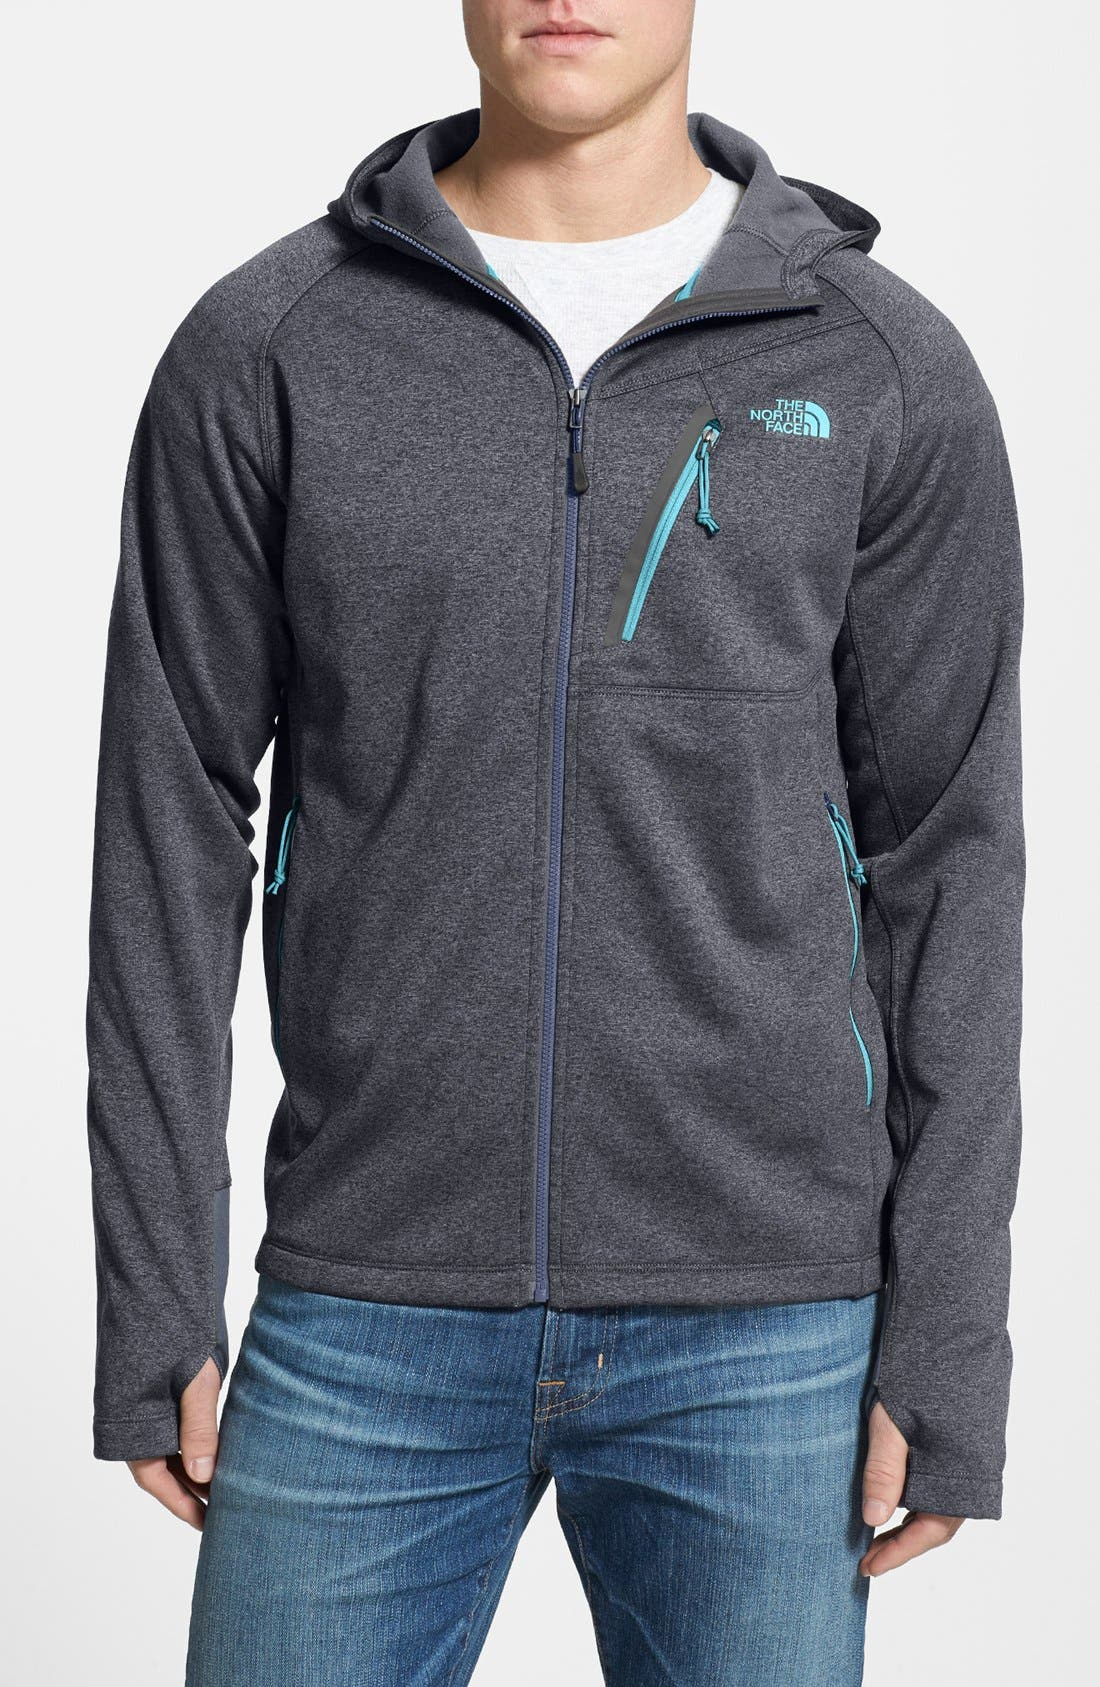 Alternate Image 1 Selected - The North Face 'Canyonlands' Full Zip Hoodie